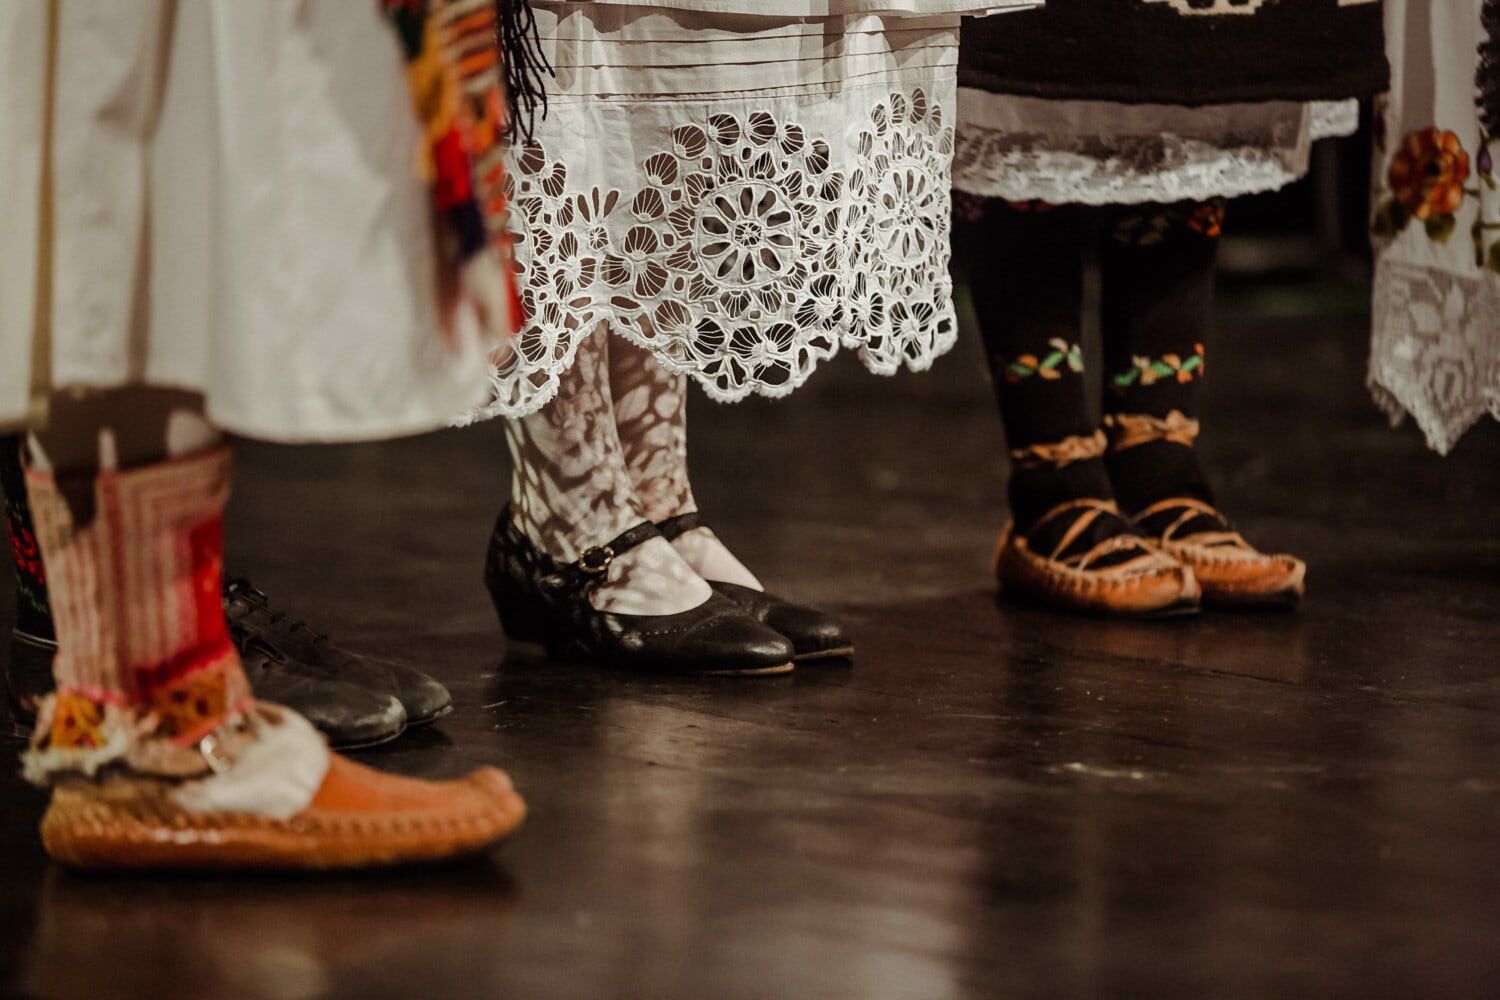 skirt, shoes, dress, tradition, outfit, traditional, footwear, covering, shoe, foot